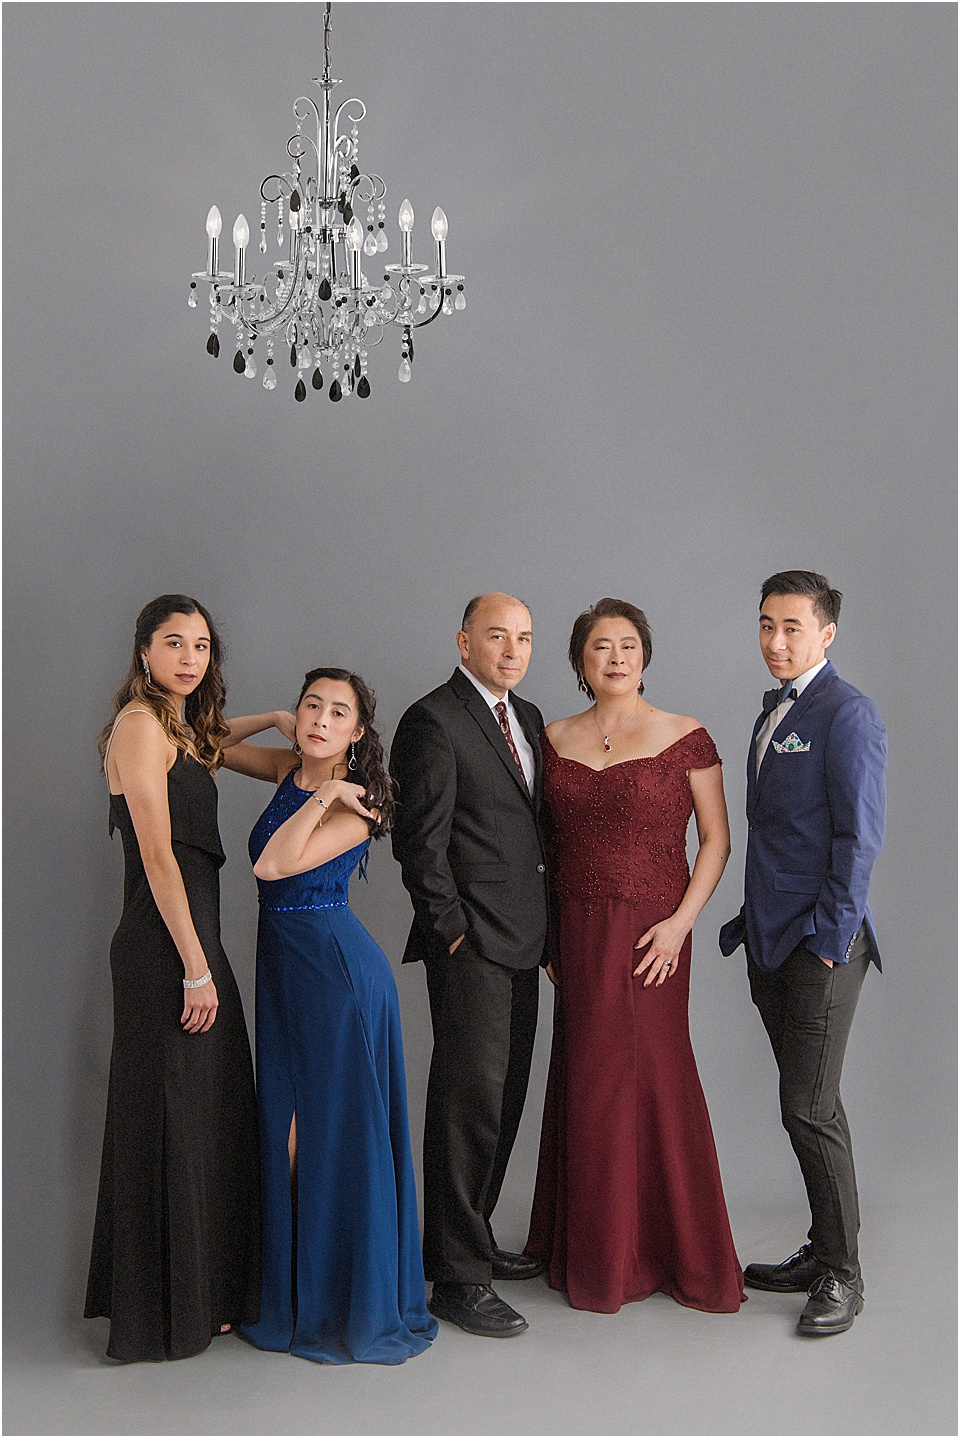 Studio B Portraits_beautiful asain family formal portrait.jpg